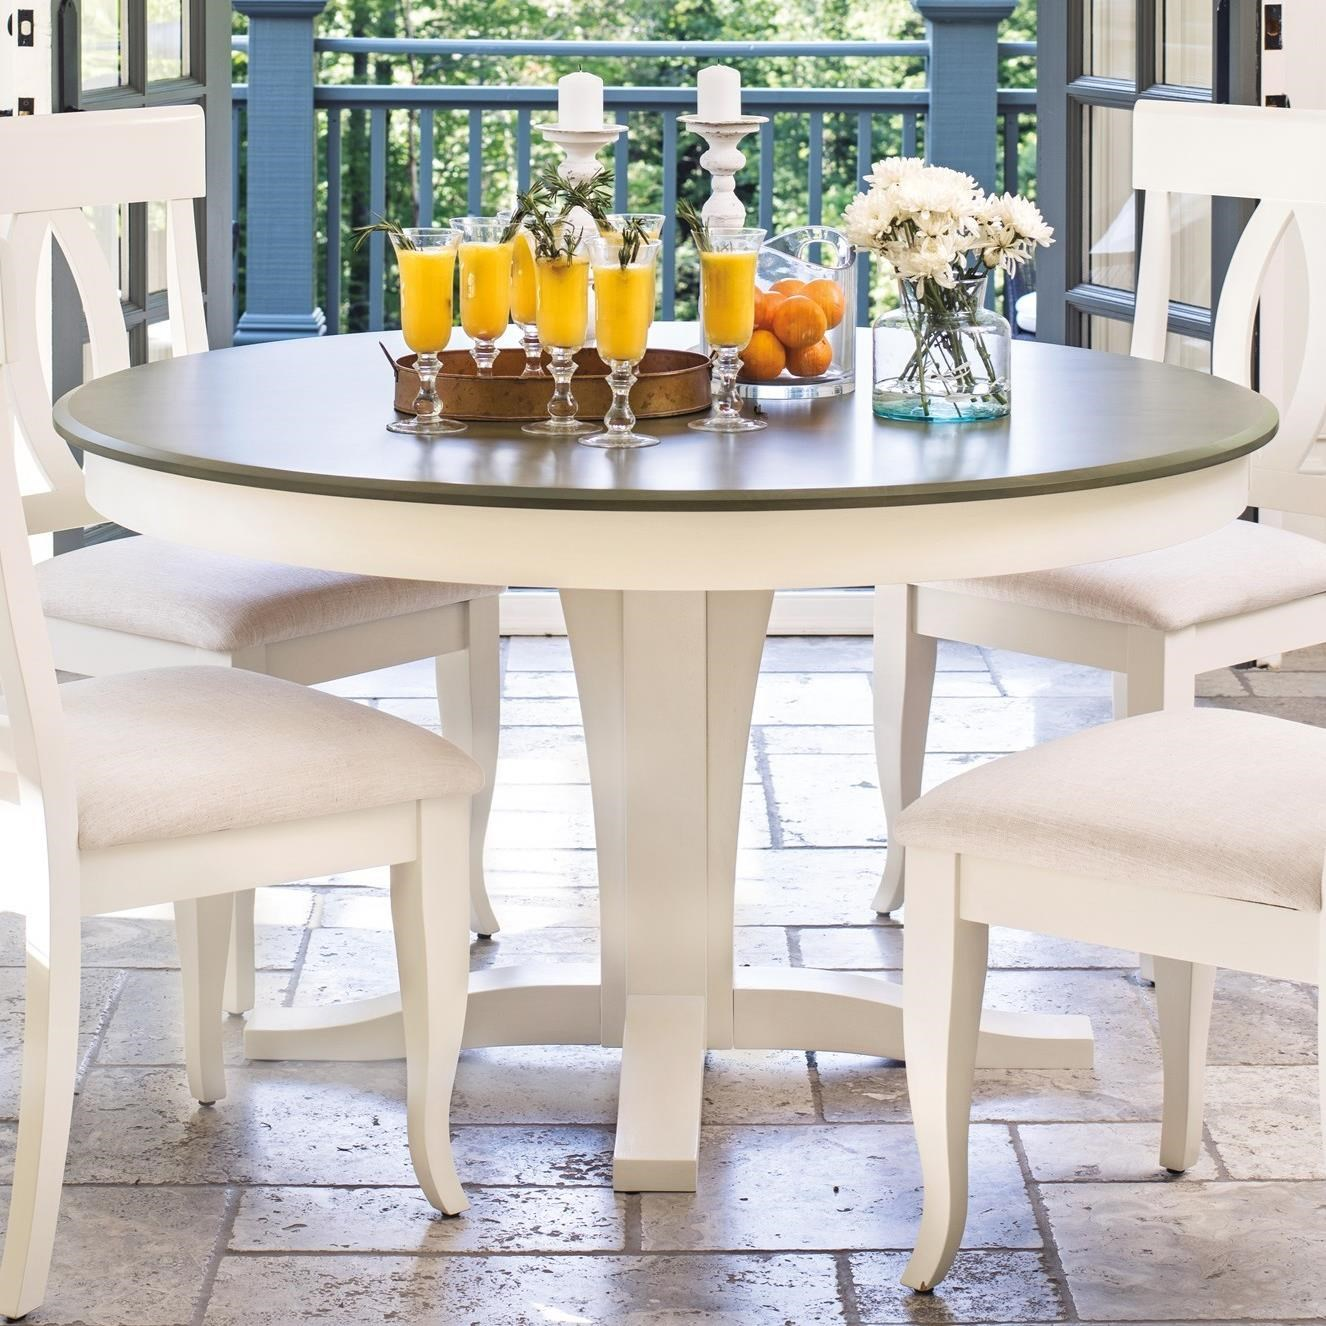 Gourmet - Custom Dining Customizable Round Table by Canadel at Dinette Depot